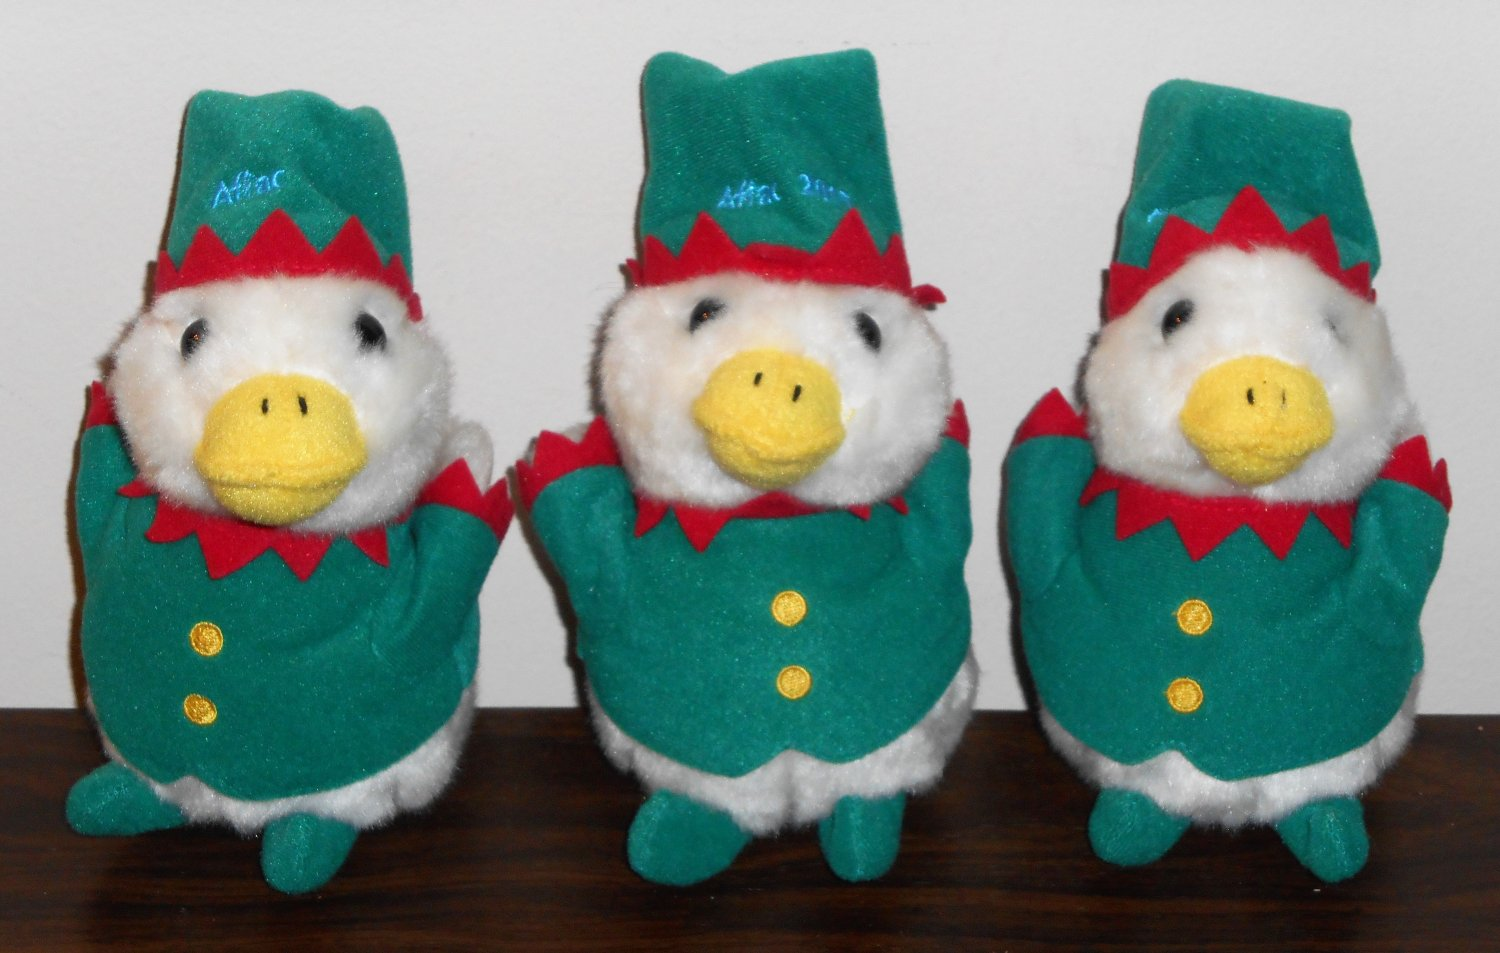 Aflac Talking Elf Duck 6 Six Inch Plush Toy 2015 Lot of 3 Three Index Promotions